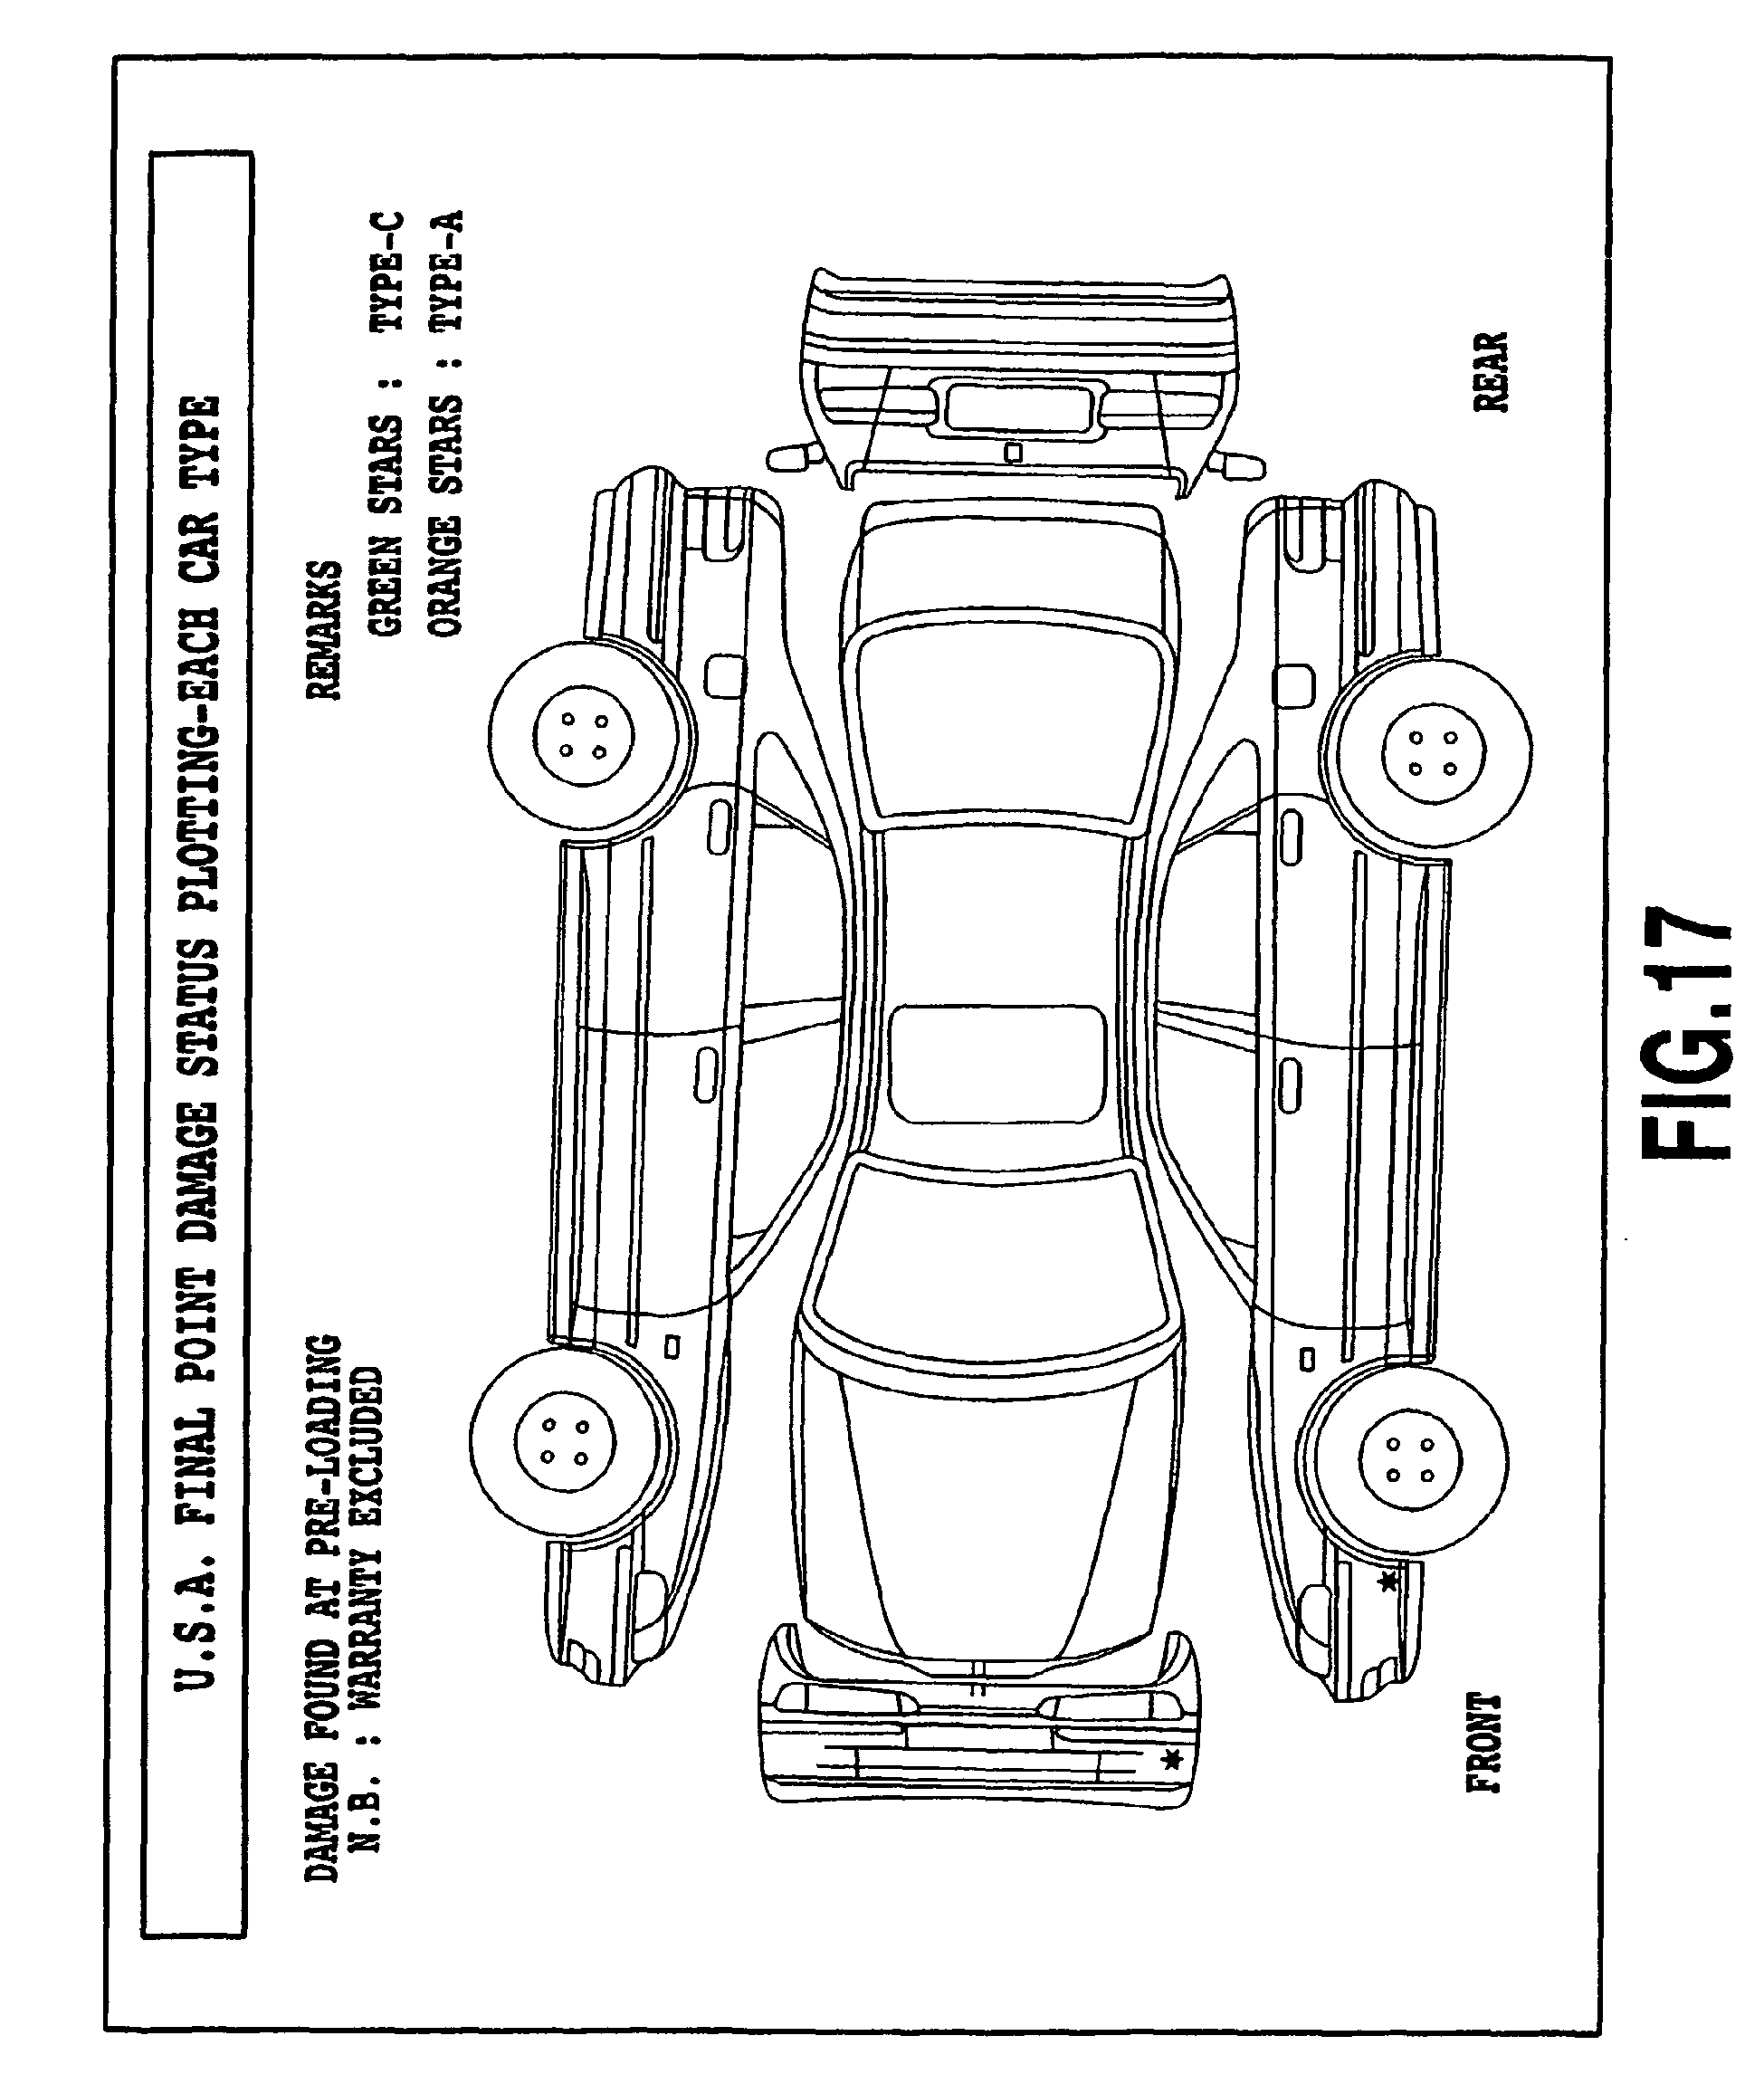 Airmatic besides Torque Converter Housing Case besides P 0996b43f8037fc9b also EP0955029B1 likewise EP1306322B1. on vehicle cl diagram